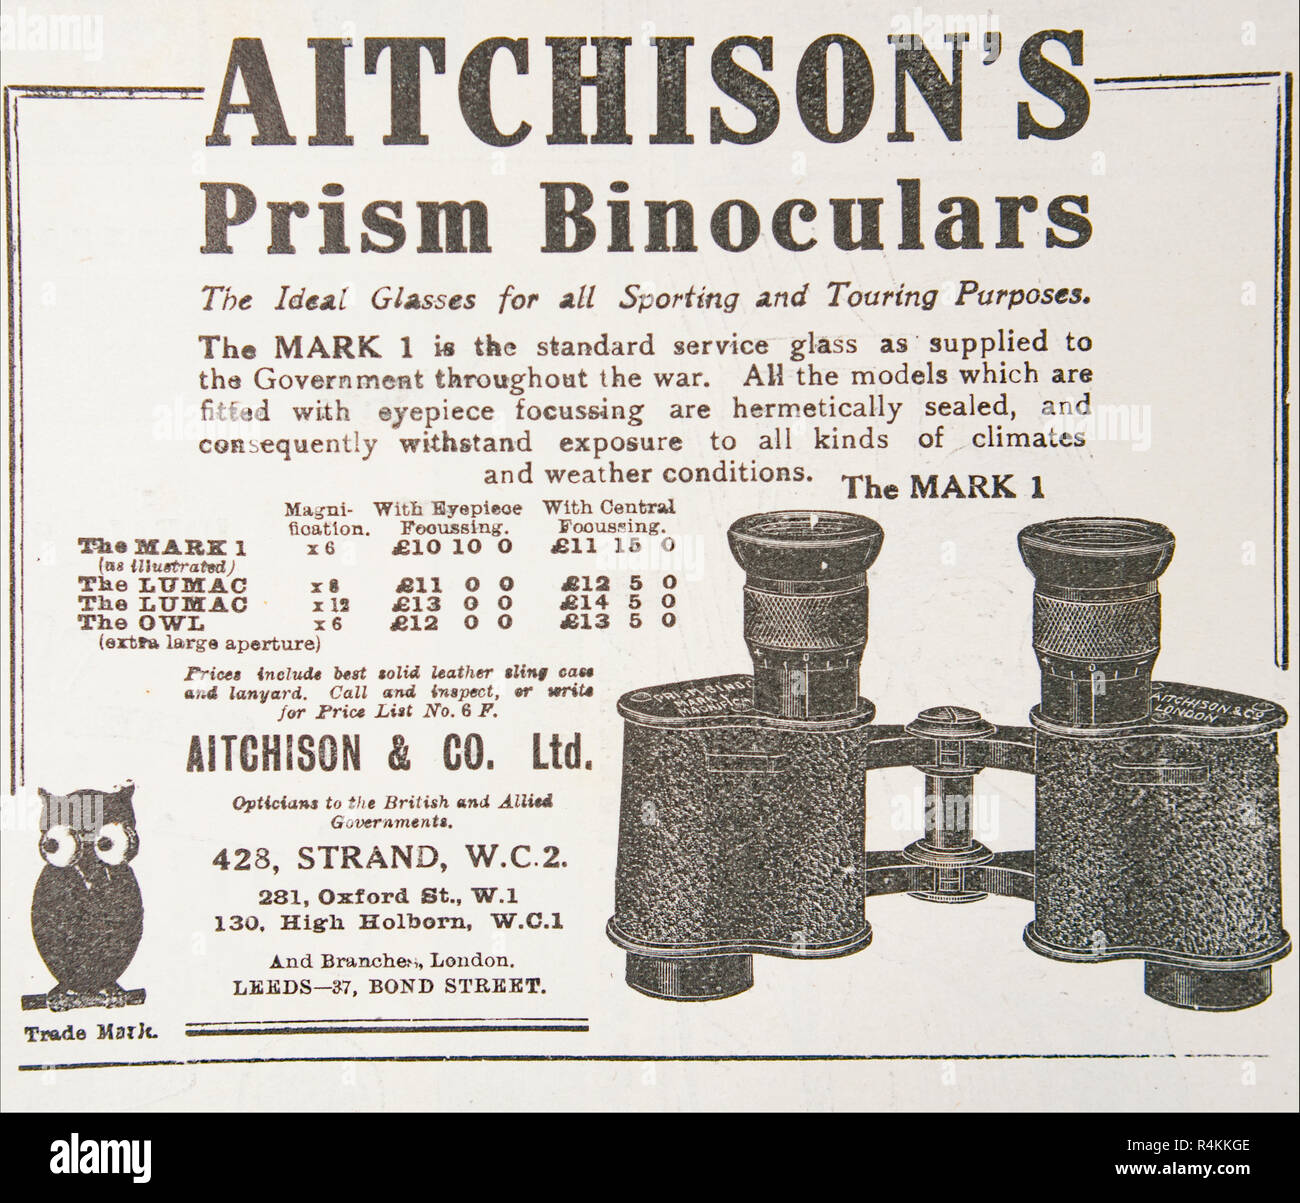 An old advert for Aitchison's Prism Binoculars. From an old British magazine from the 1914-1919 period. - Stock Image